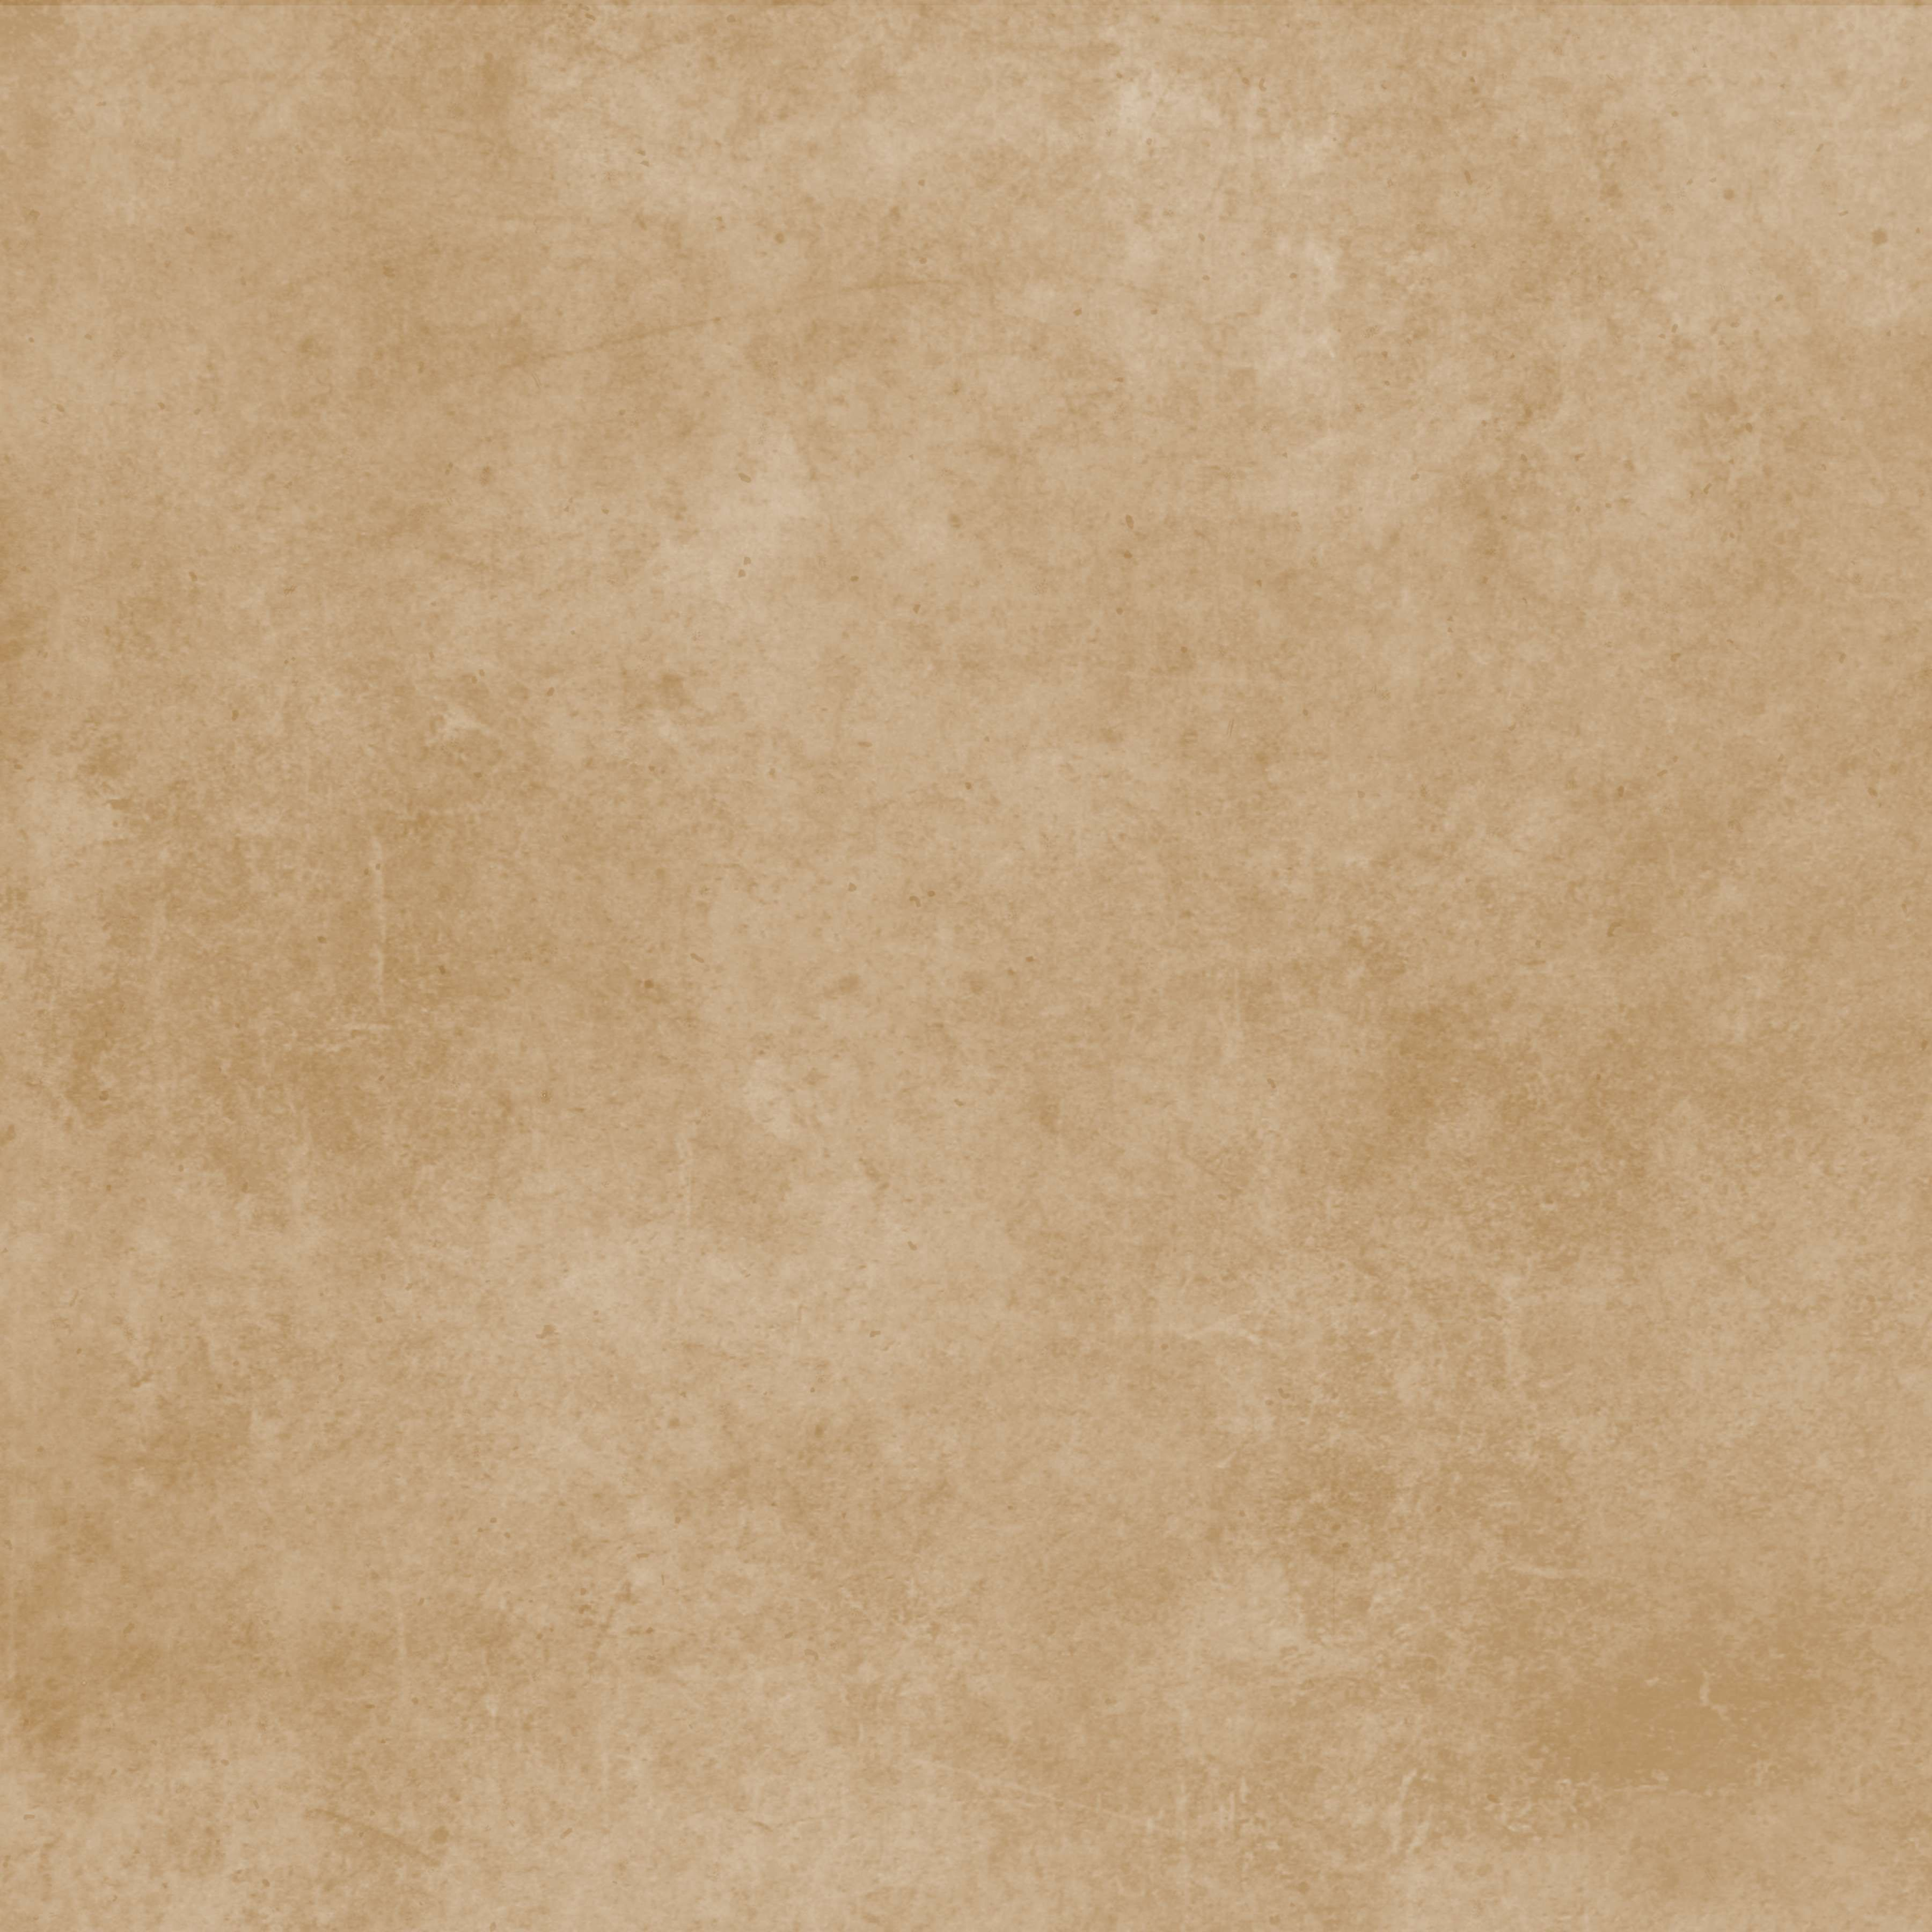 Texture Carrelage Moderne Beau Photographie Aged Backdrop Beige Brown Decorative Grunge Old Paper